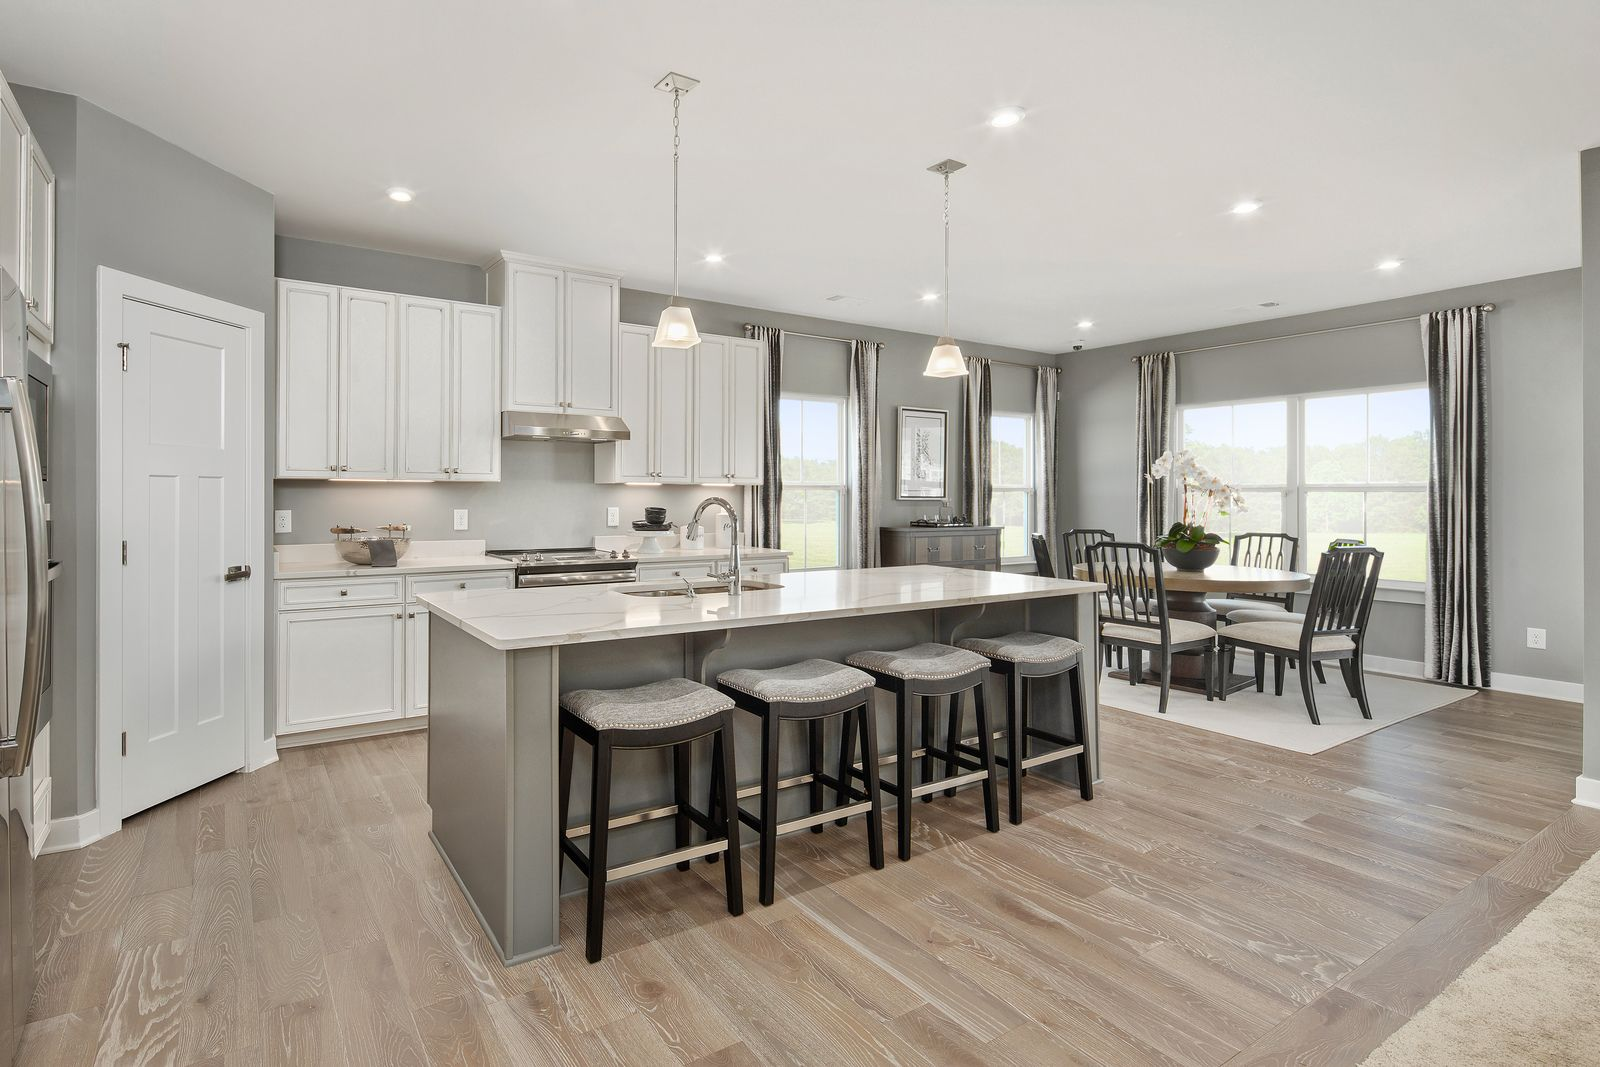 Kitchen featured in the Savannah By Ryan Homes in Sussex, DE